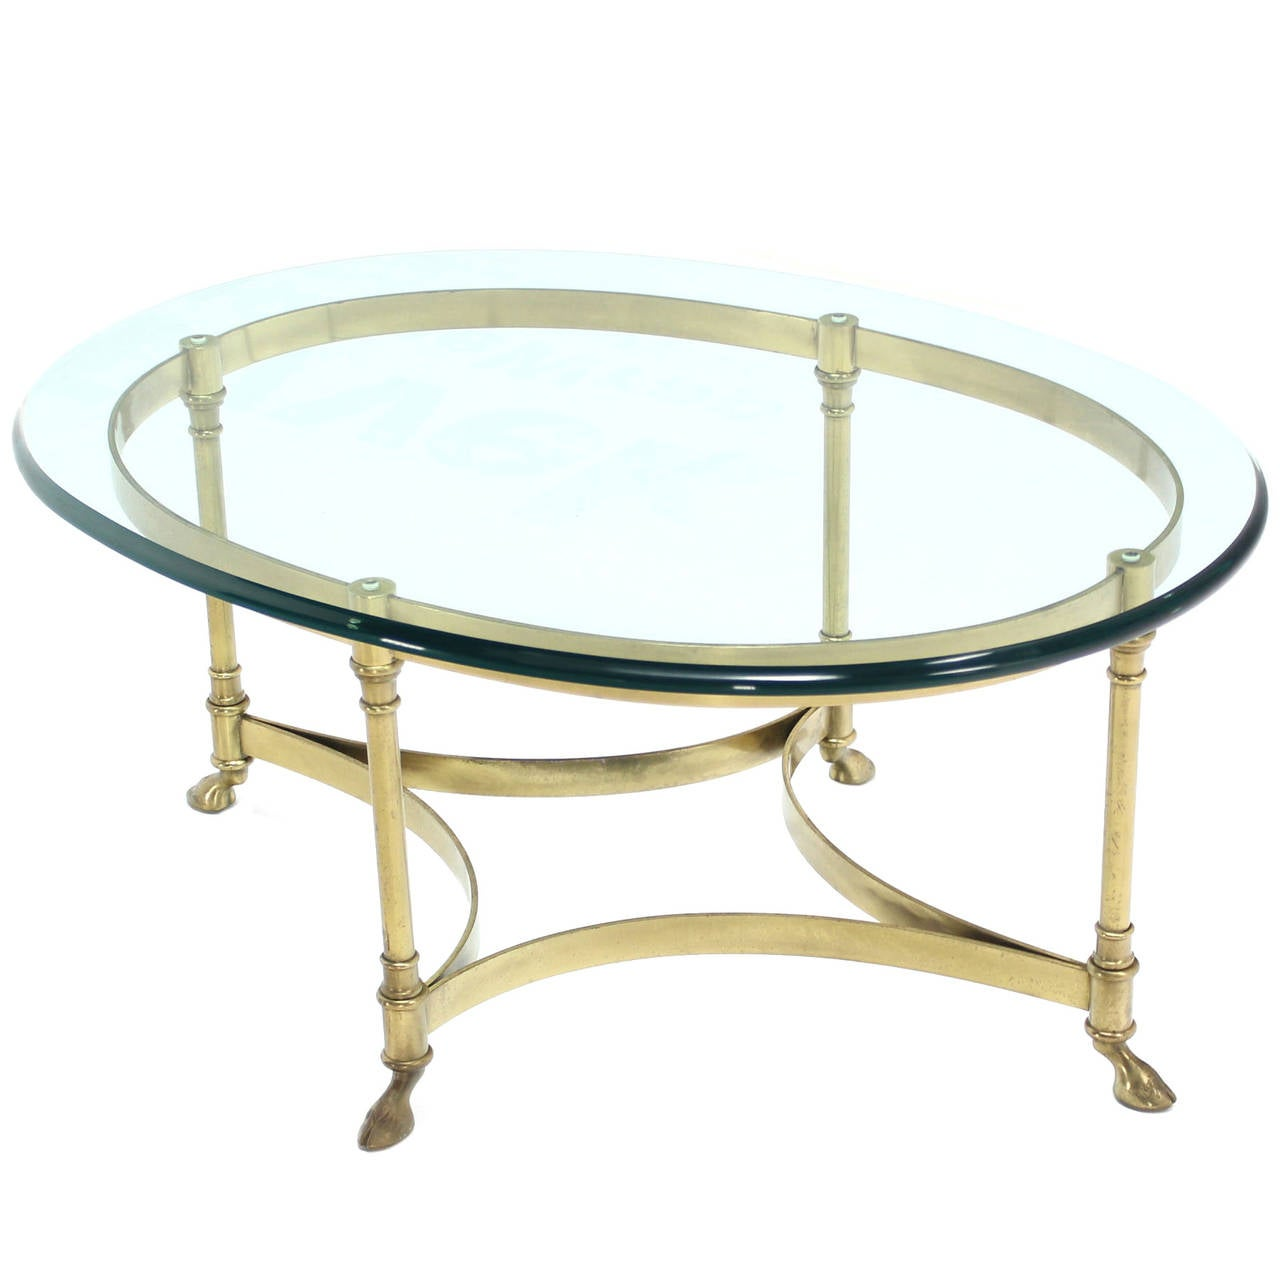 Brass And Glass Oval Hoof Feet Coffee Table